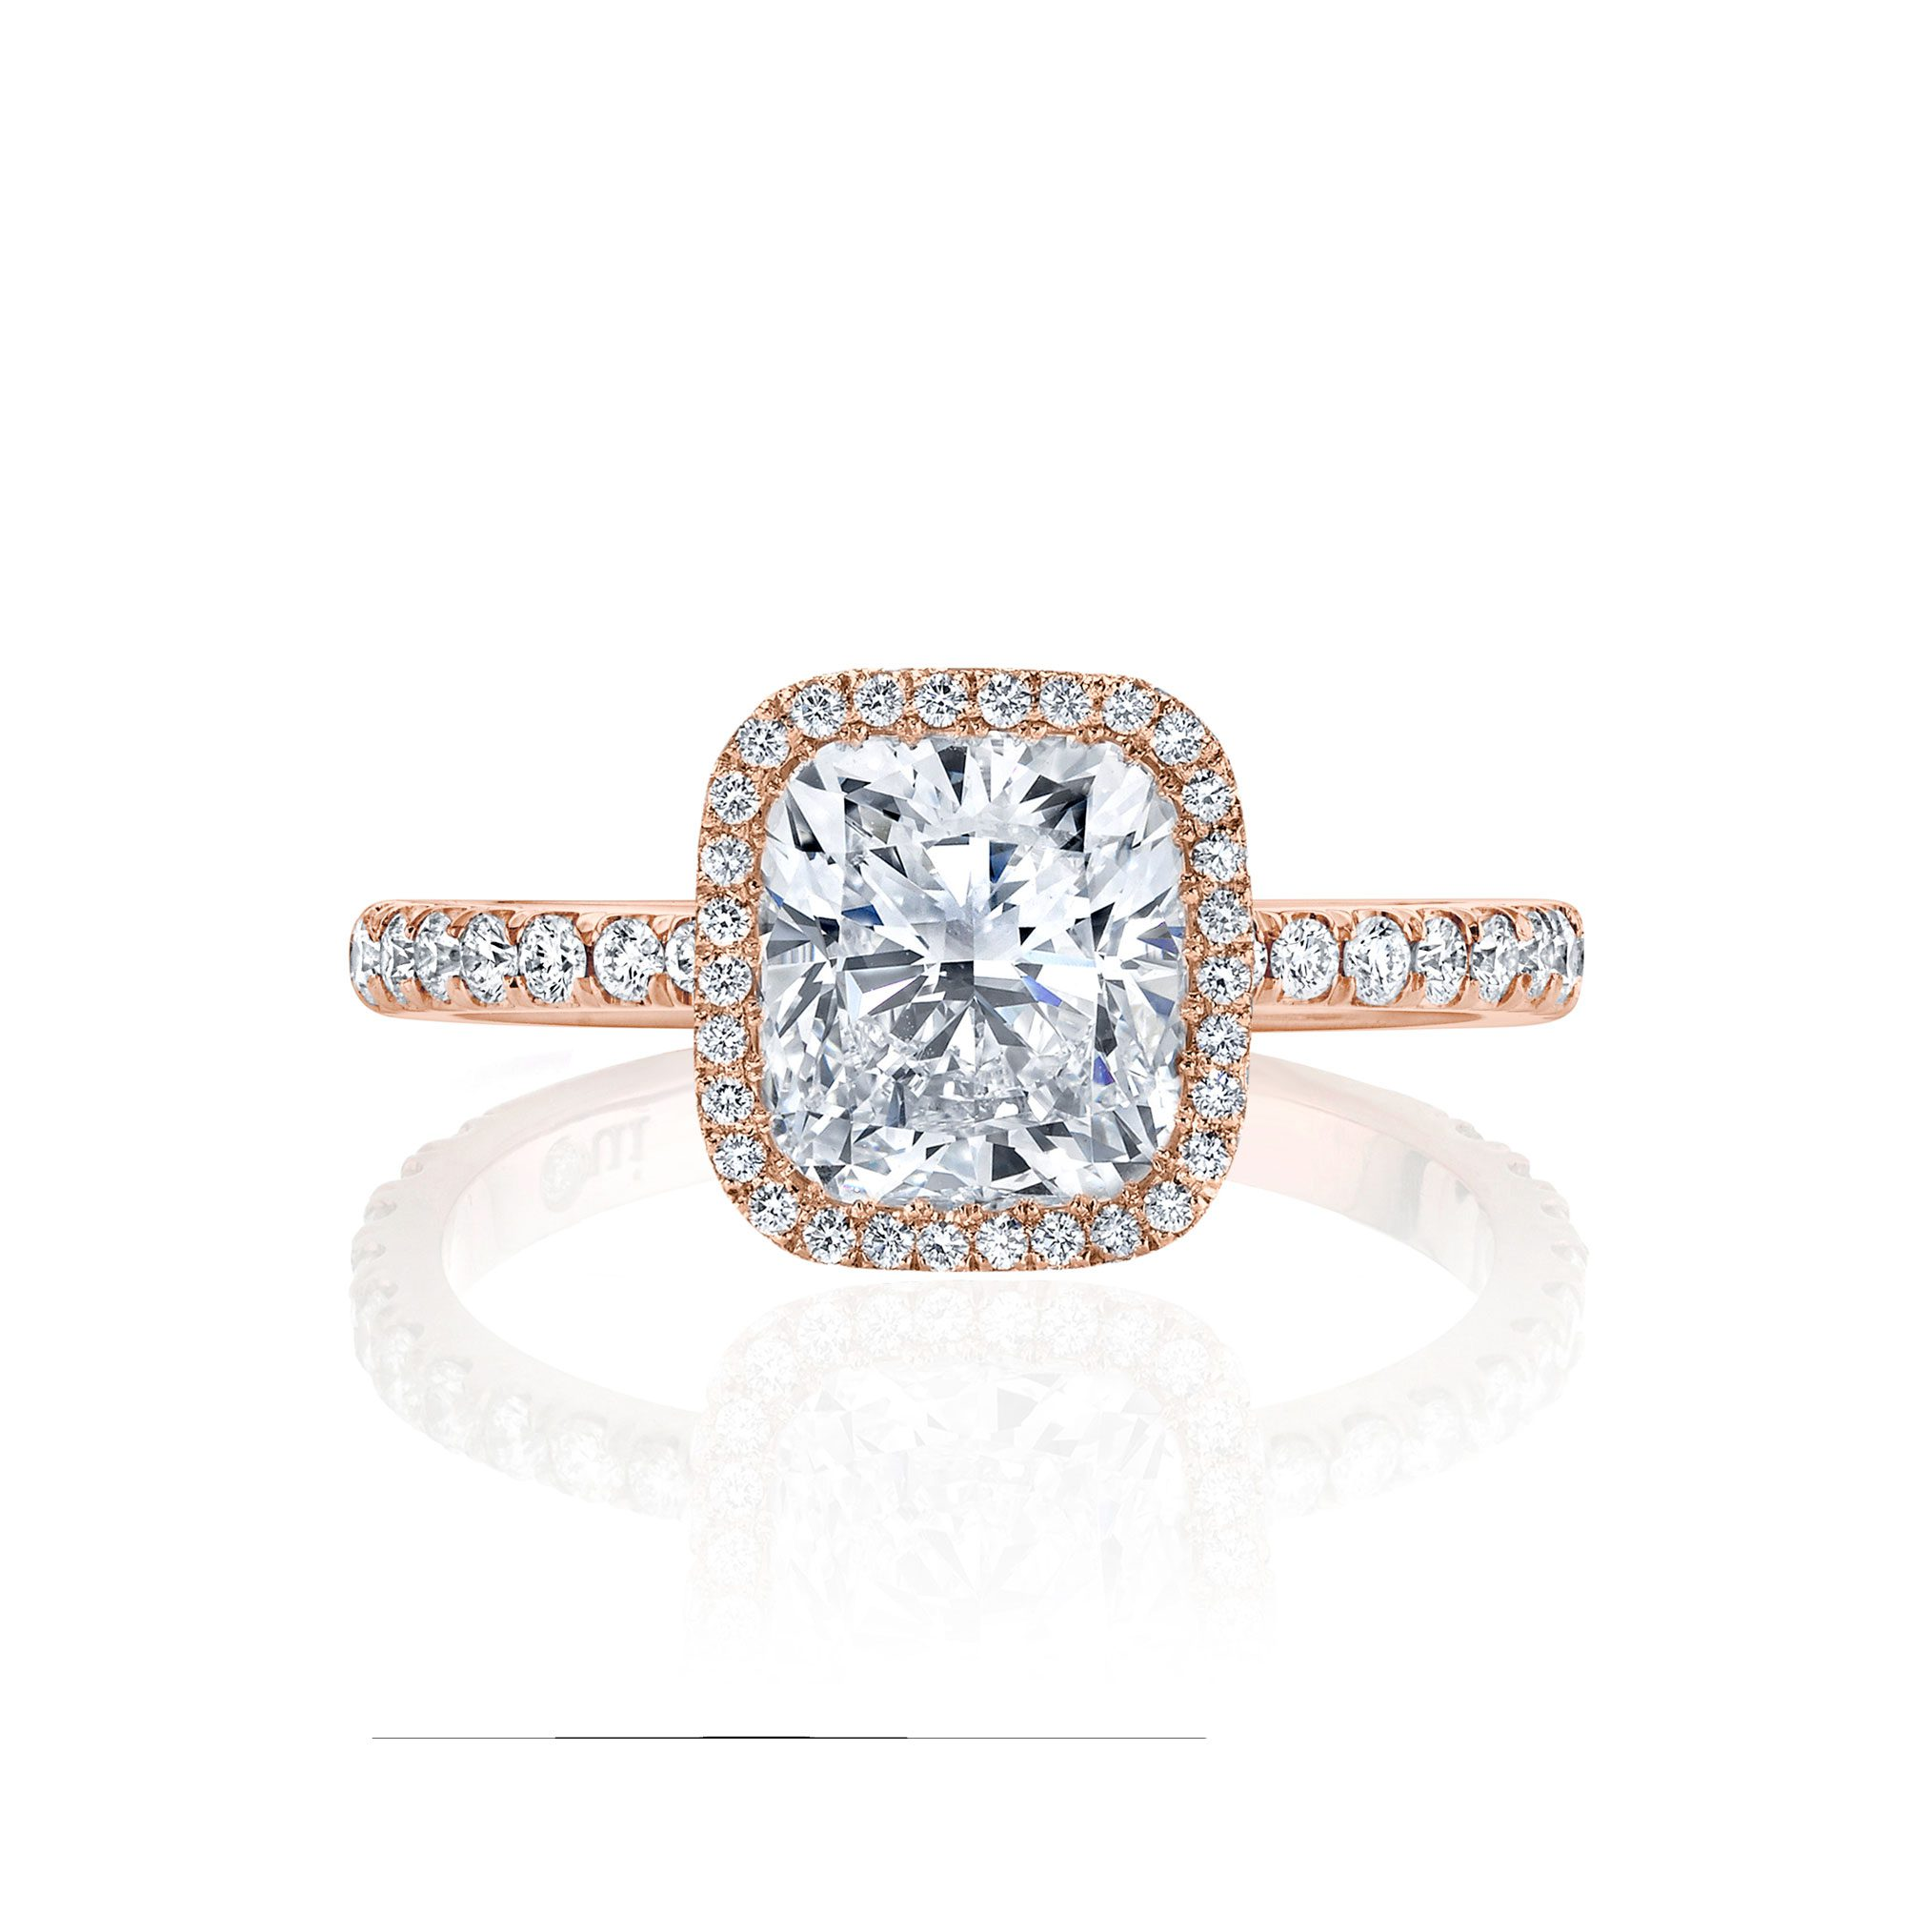 Eloise Seamless Halo® Engagement Ring Cushion Cut Ring with 18k rose gold pavé band